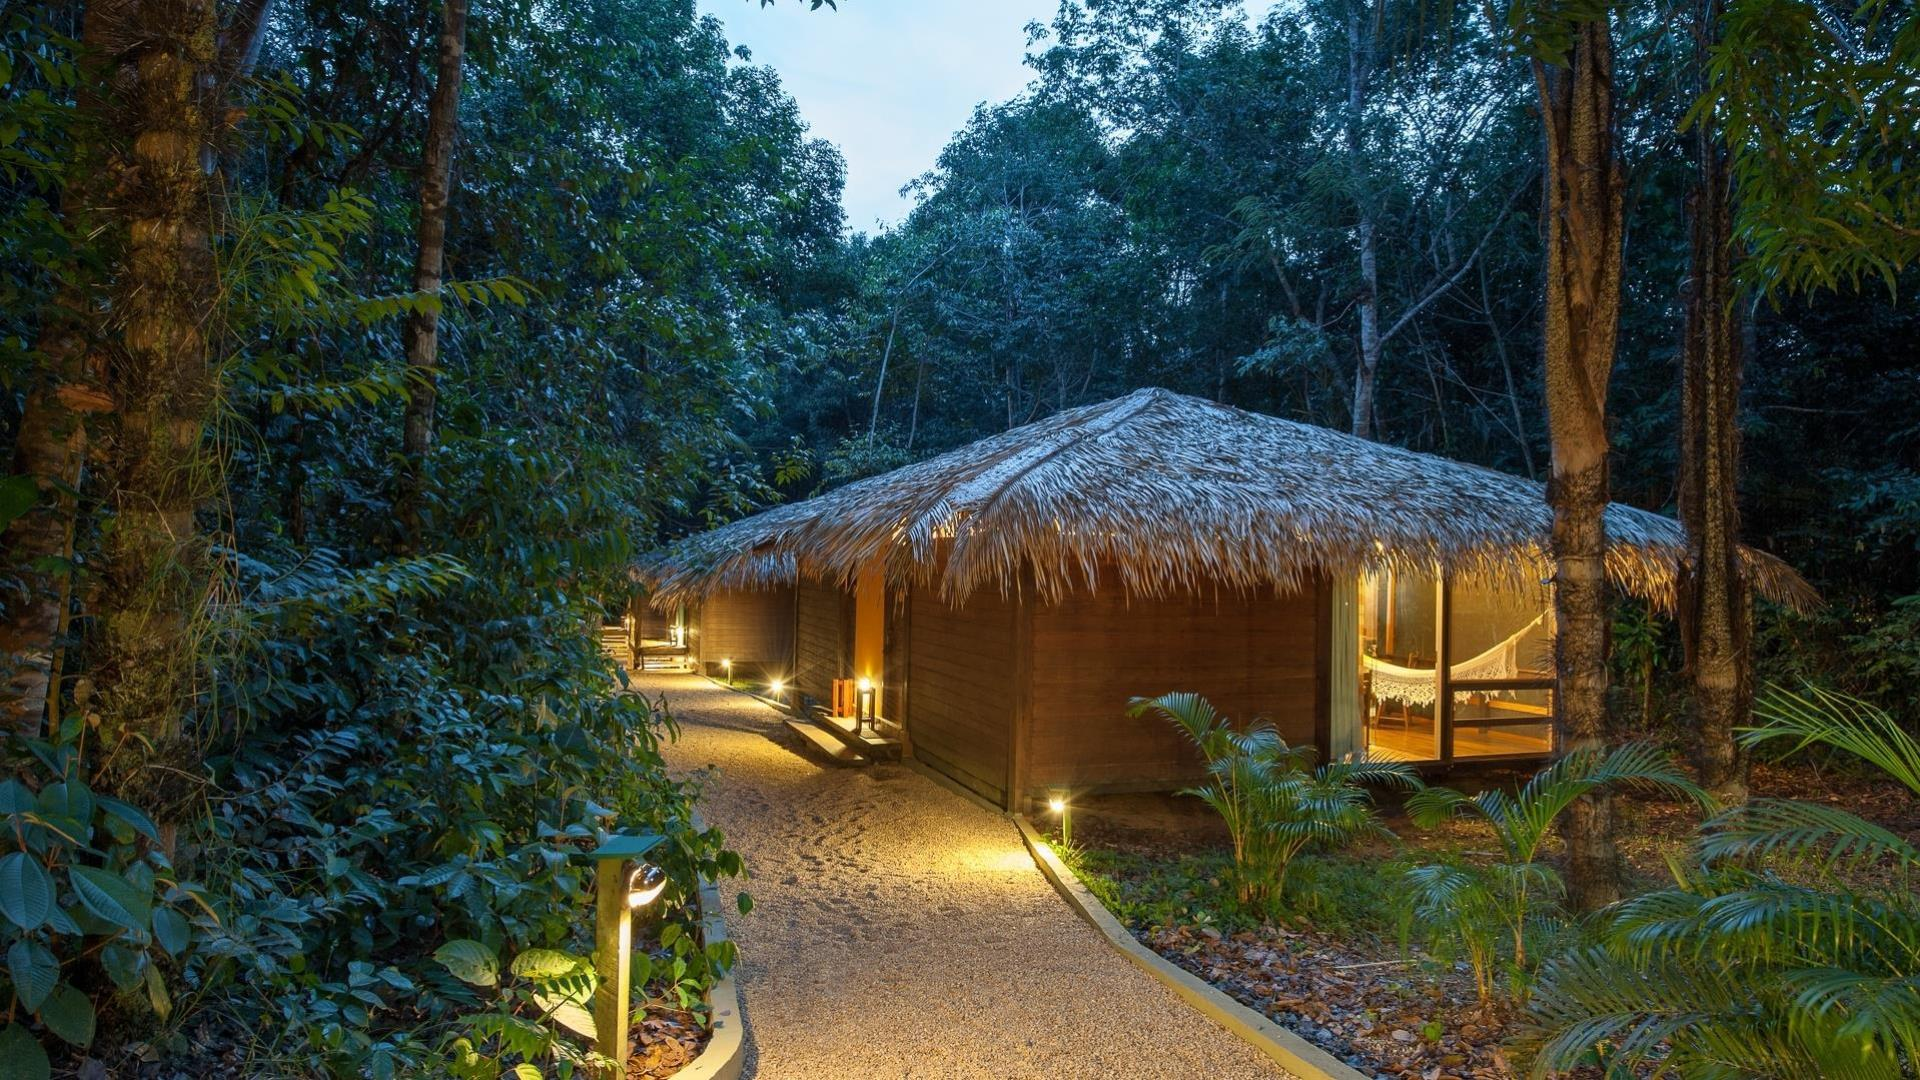 3 to 6 days of Luxury and Nature in the middle of the Jungle at Anavilhanas Jungle Lodge